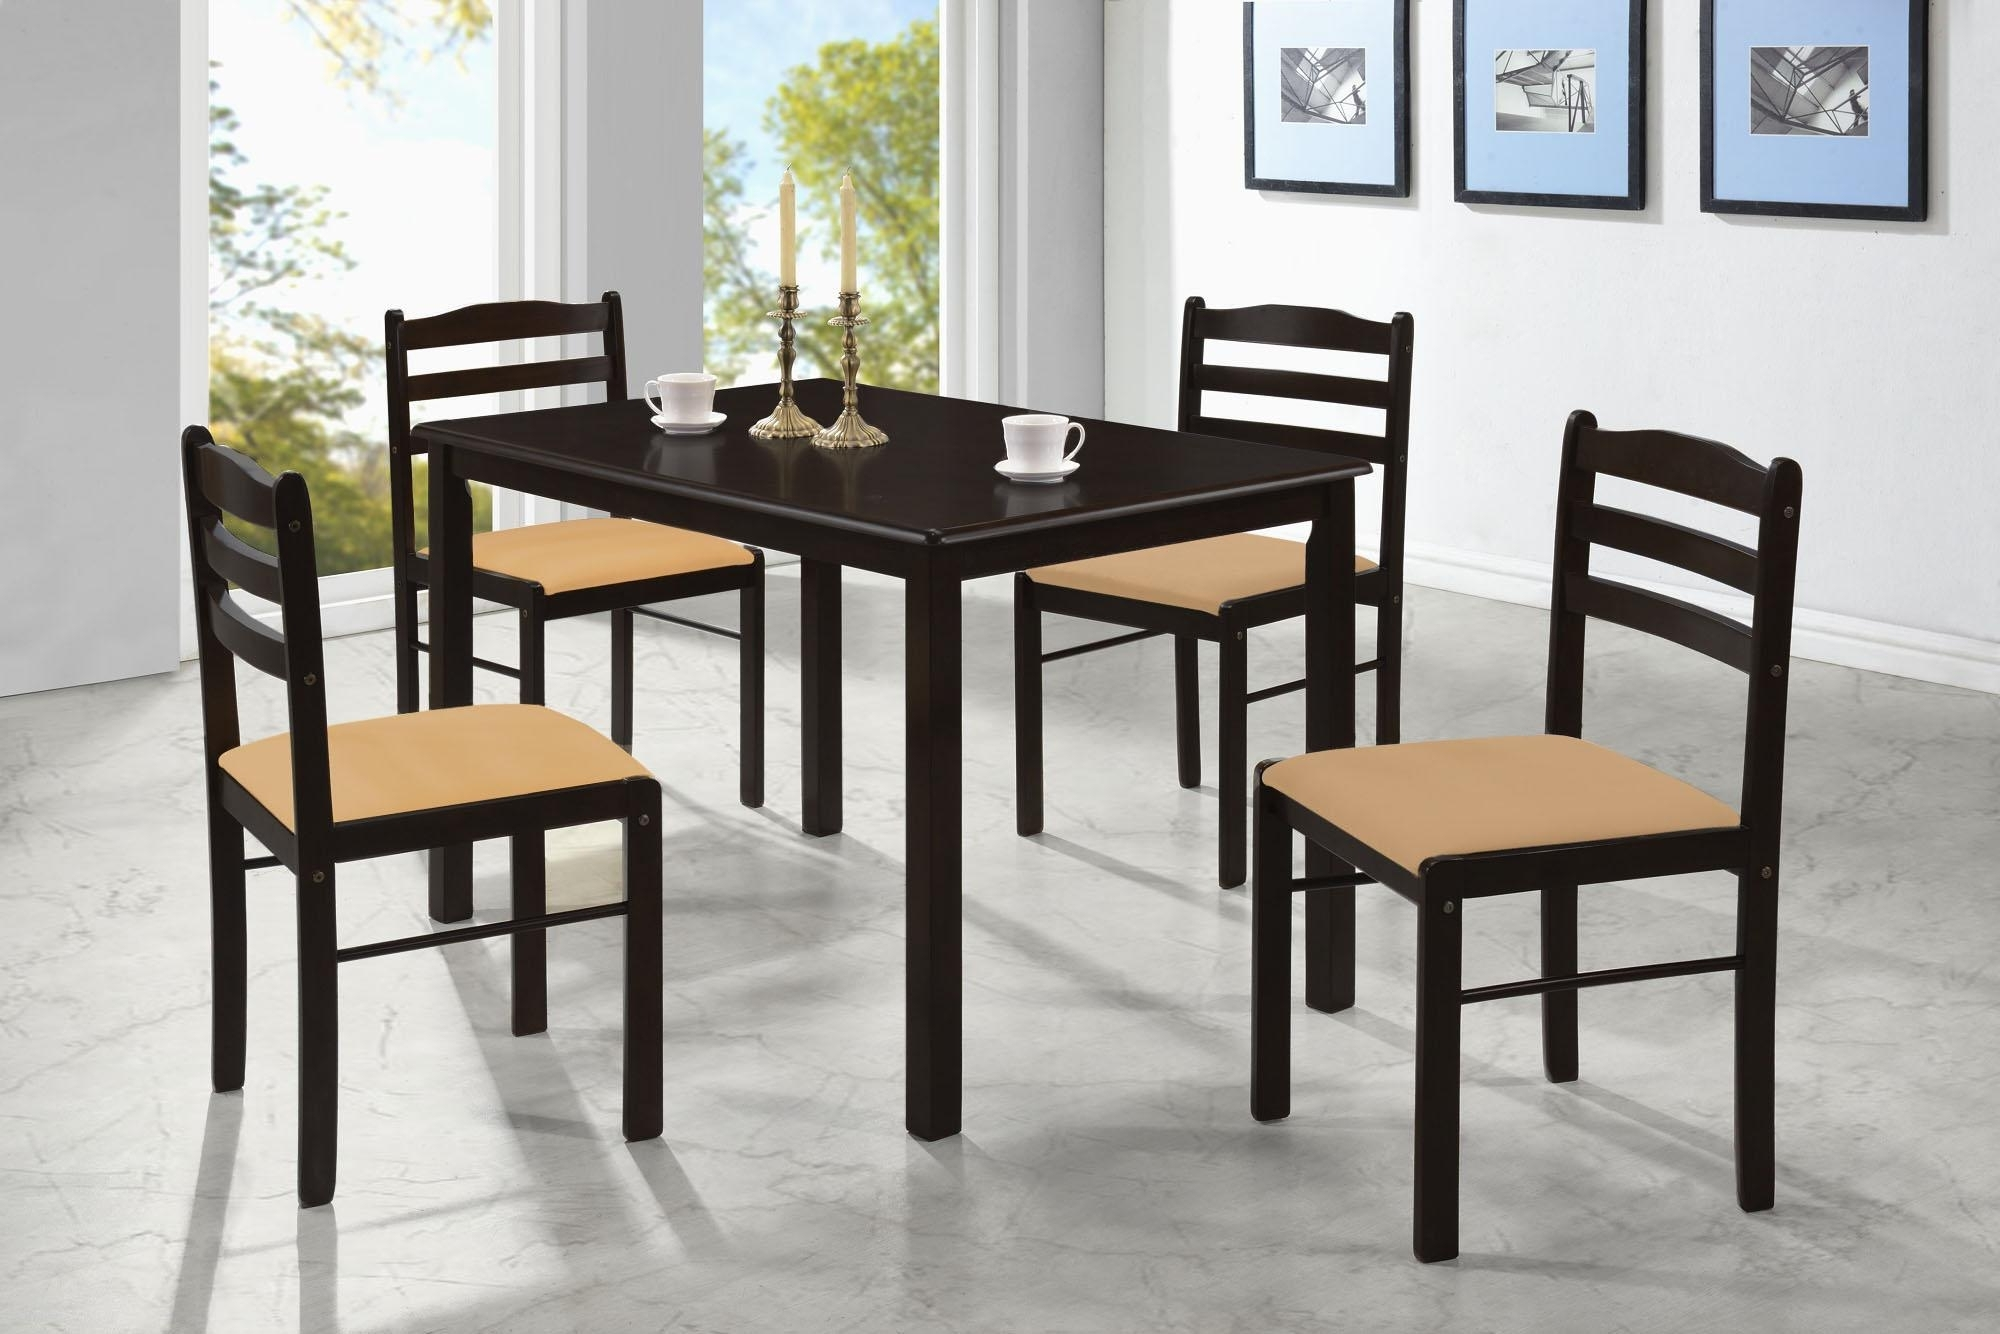 Dining Tables pertaining to Newest Dining Table For Sale - Dining Tables Prices, Brands & Review In